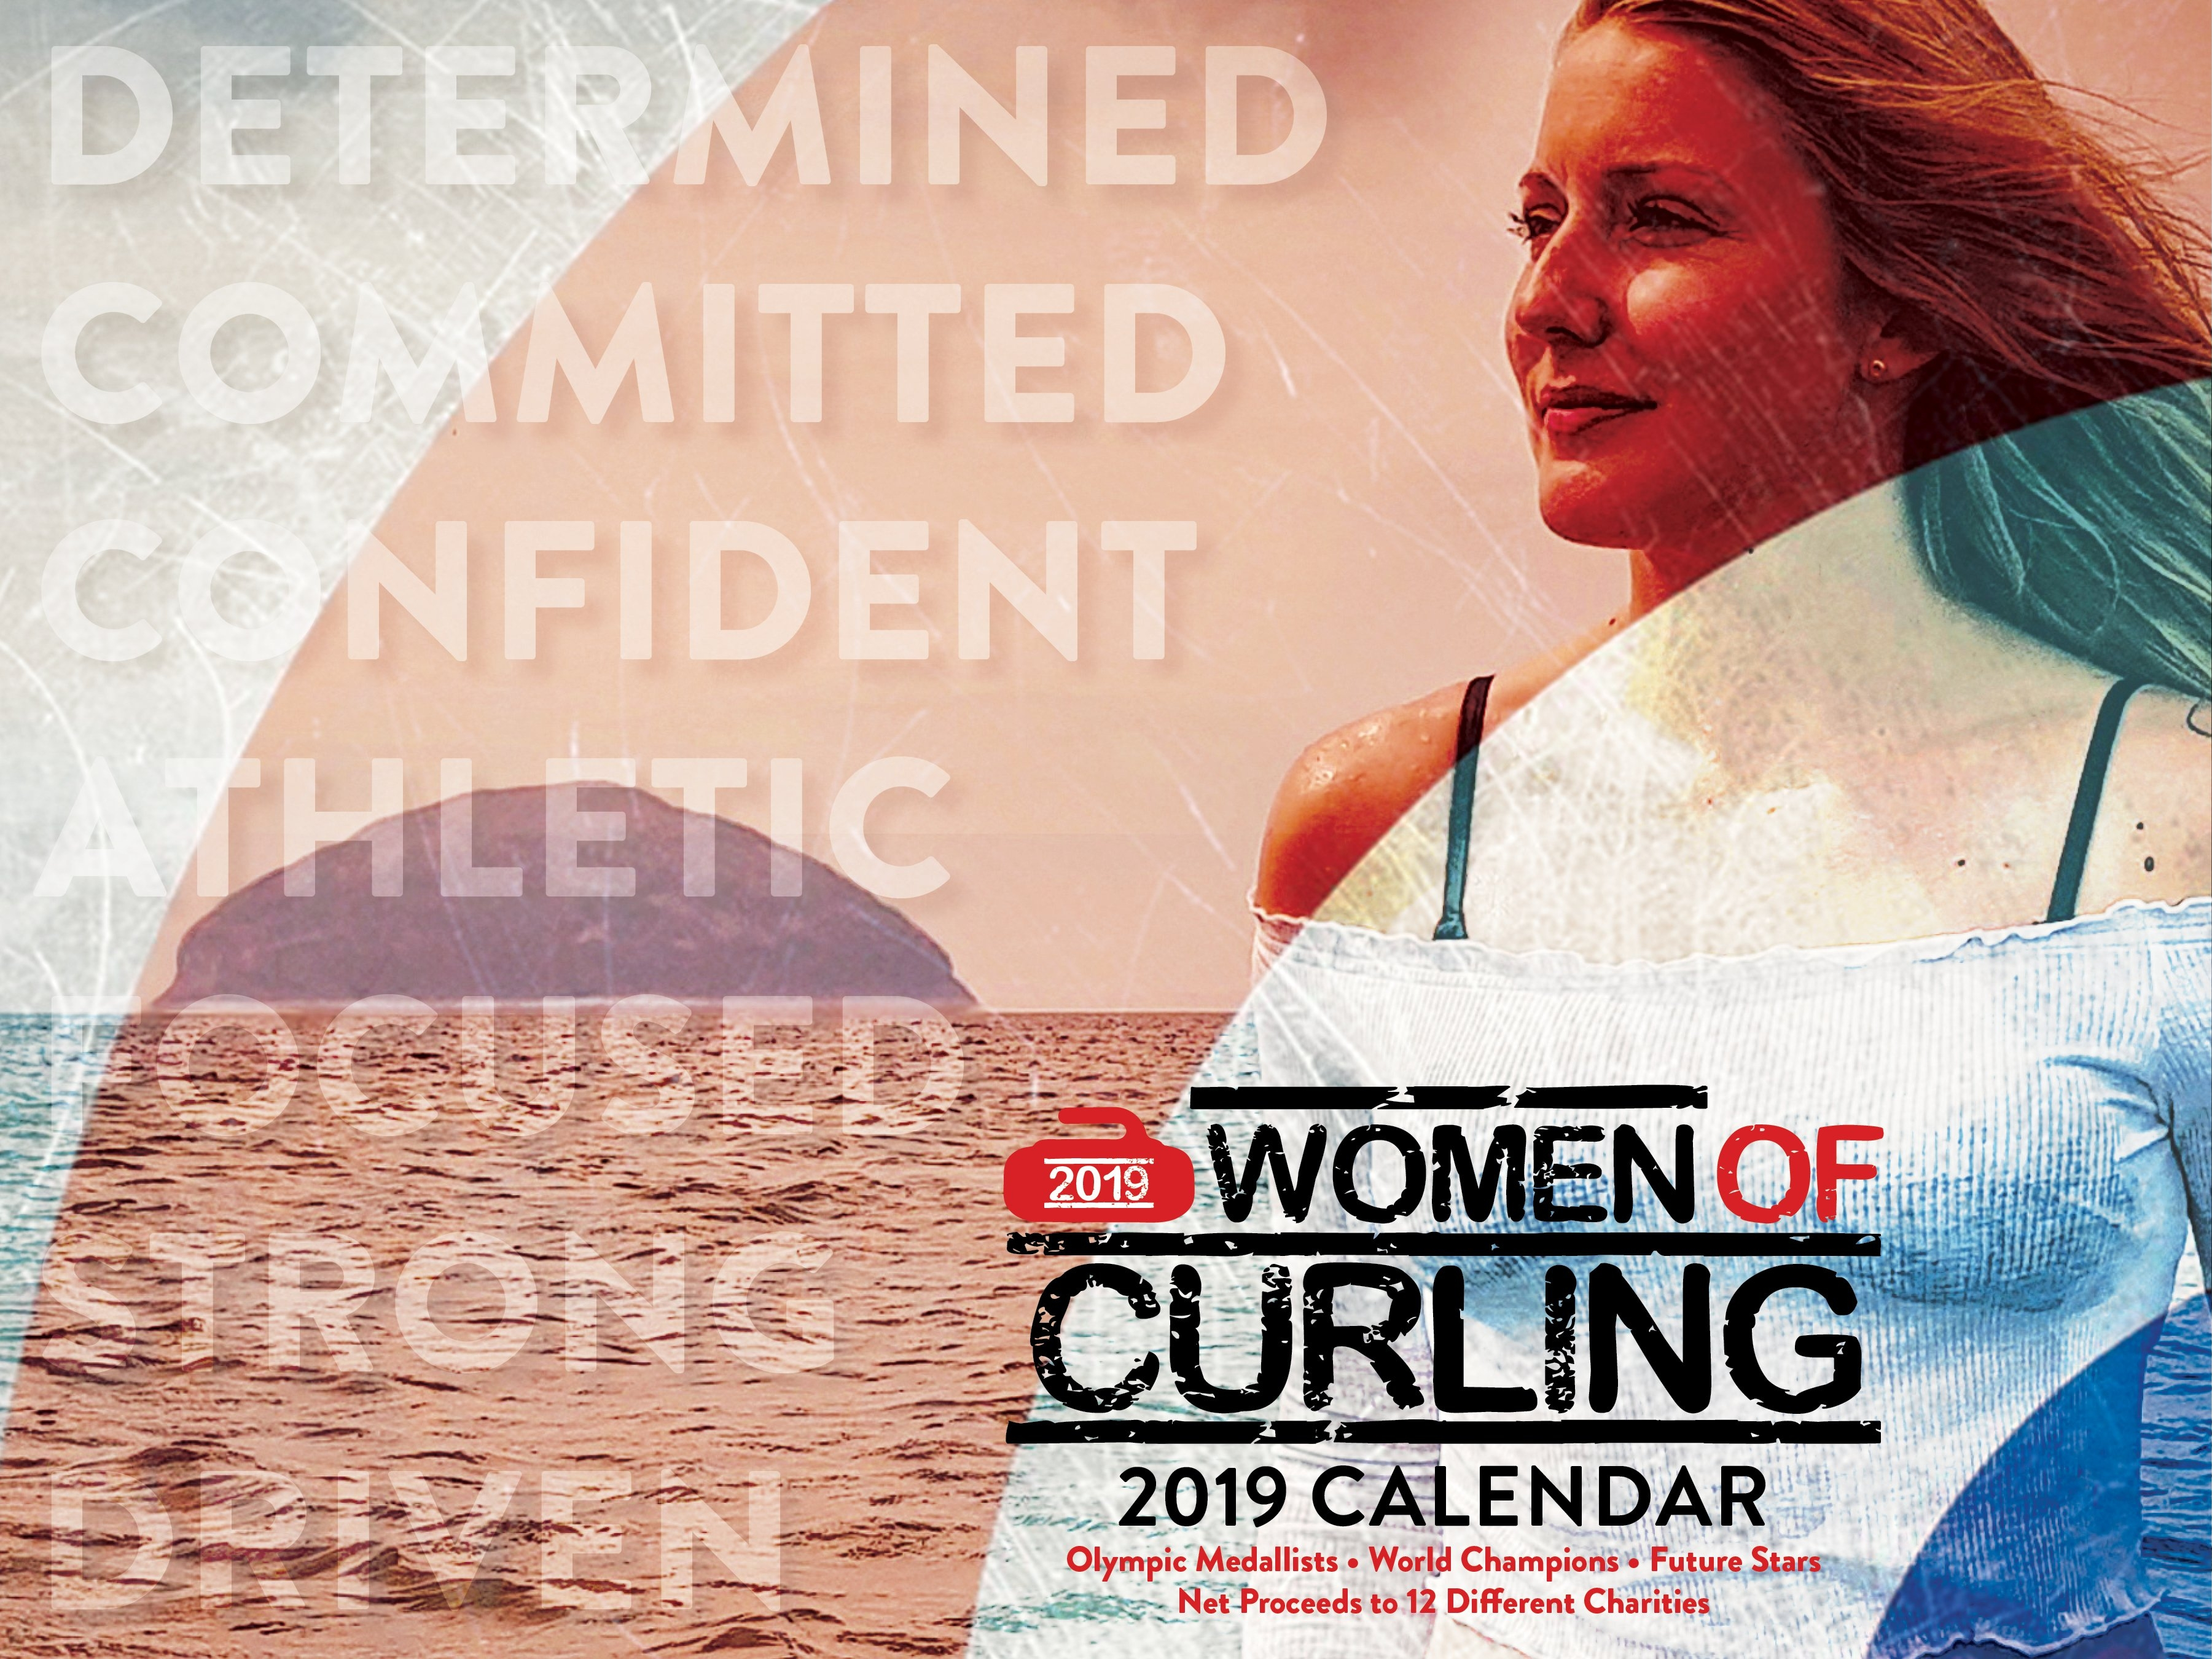 15 Athletes In 2019 Women Of Curling Calendar For Charity | The Fallout 4 Calendar 2019